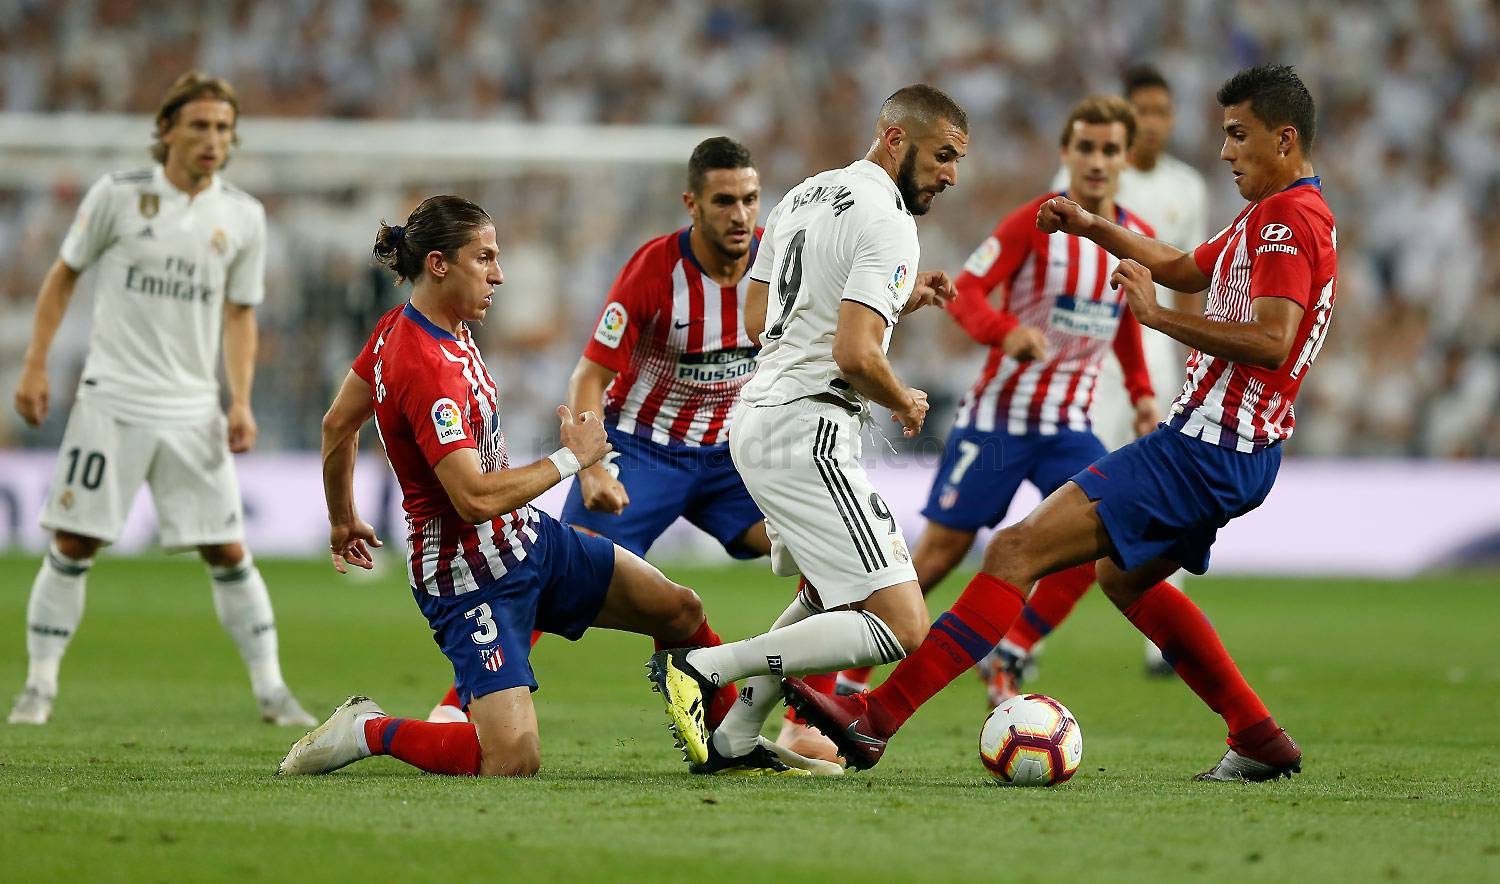 Real Madrid - Real Madrid - Atlético de Madrid - 29-09-2018